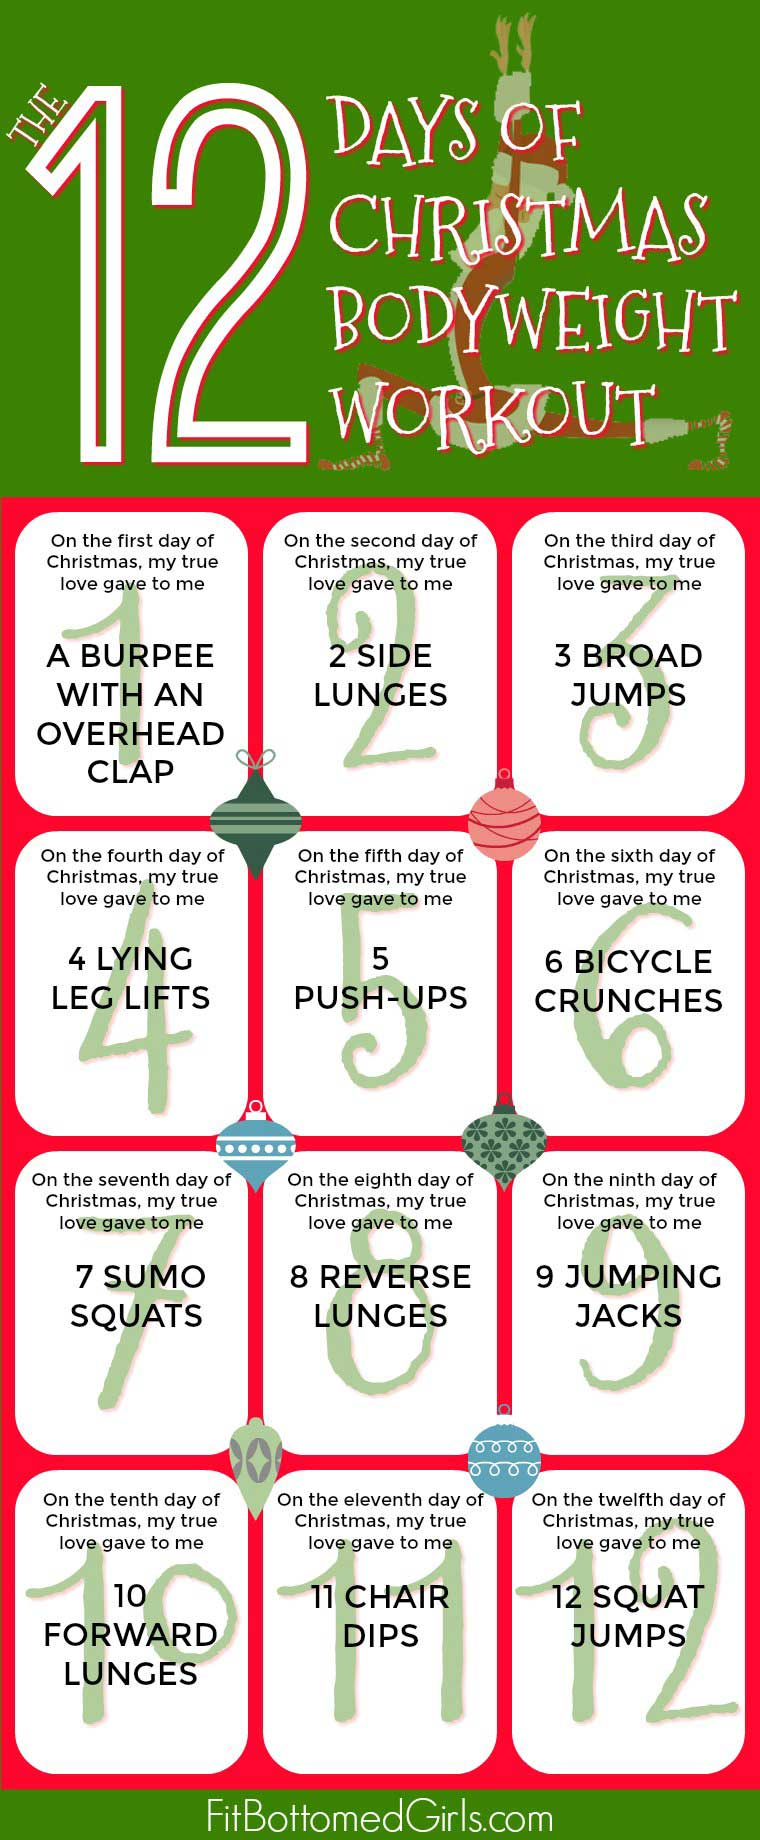 12 Days Before Christmas Gift Ideas: The 12 Days Of Christmas Bodyweight Workout